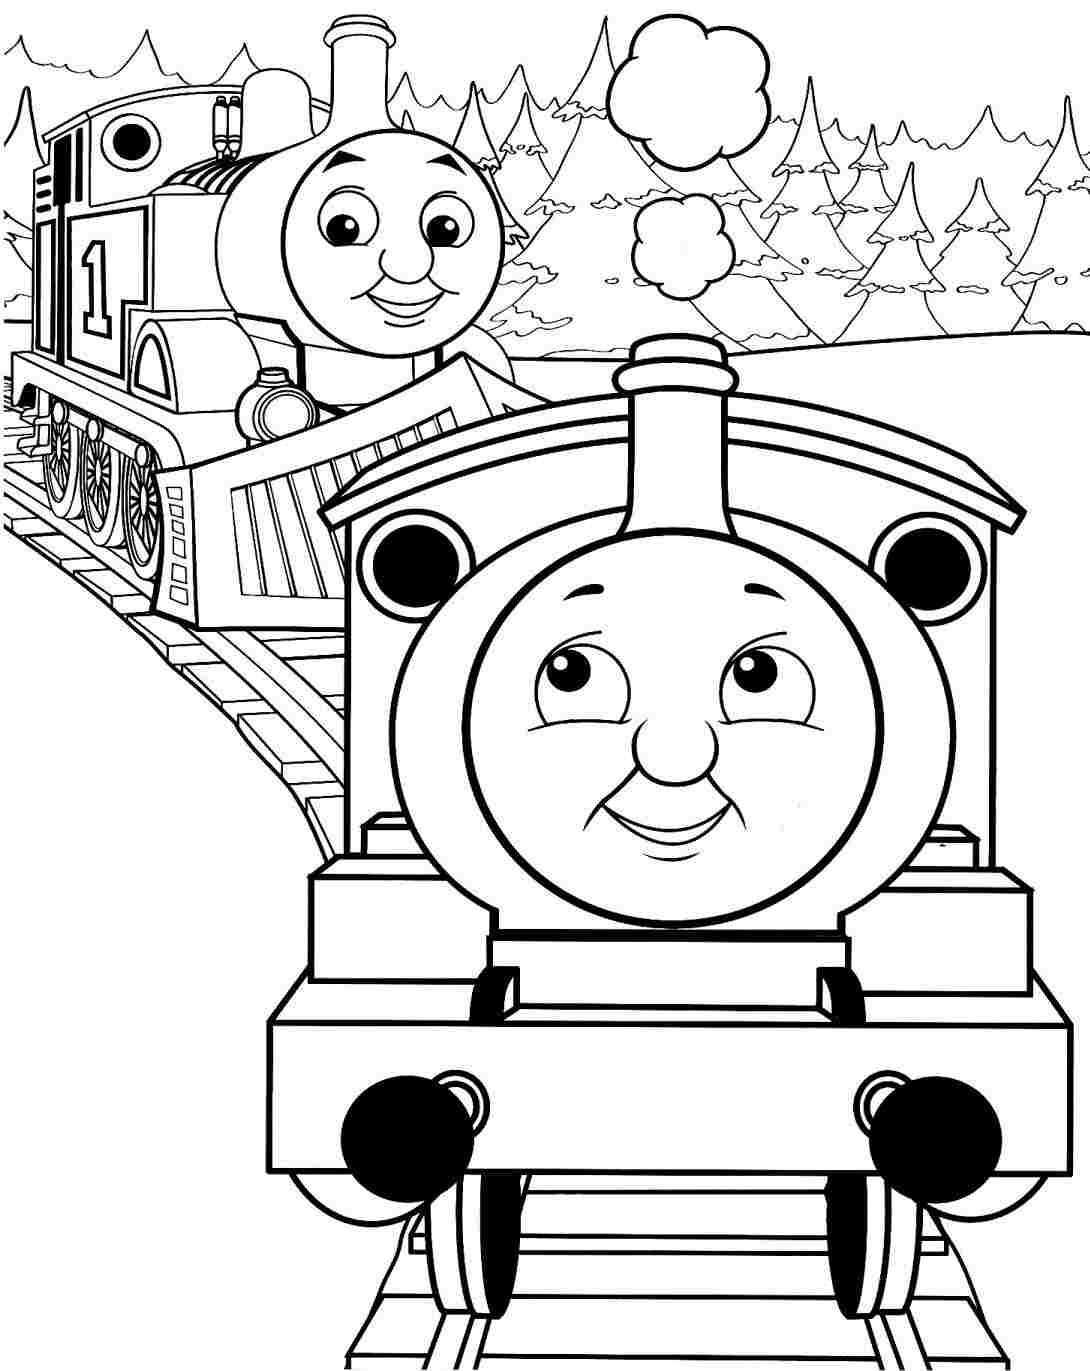 Simple Train Coloring Page at GetDrawings.com | Free for personal ...